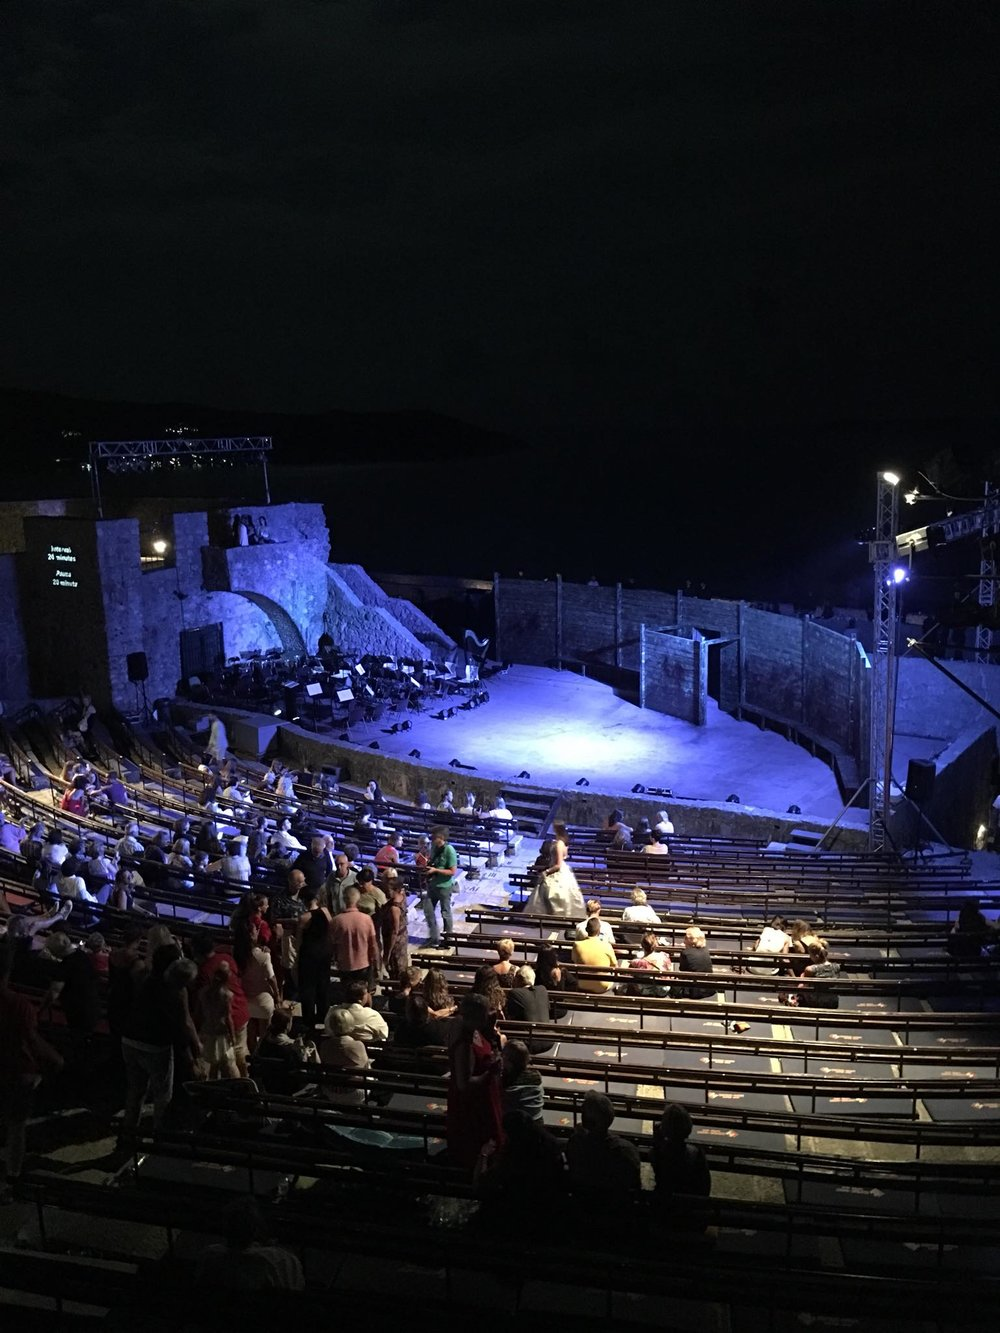 Kach Solo Travels Day 11: Experienced the Opera Festival 2018 in Herceg Novi, Montenegro! тнРя╕П